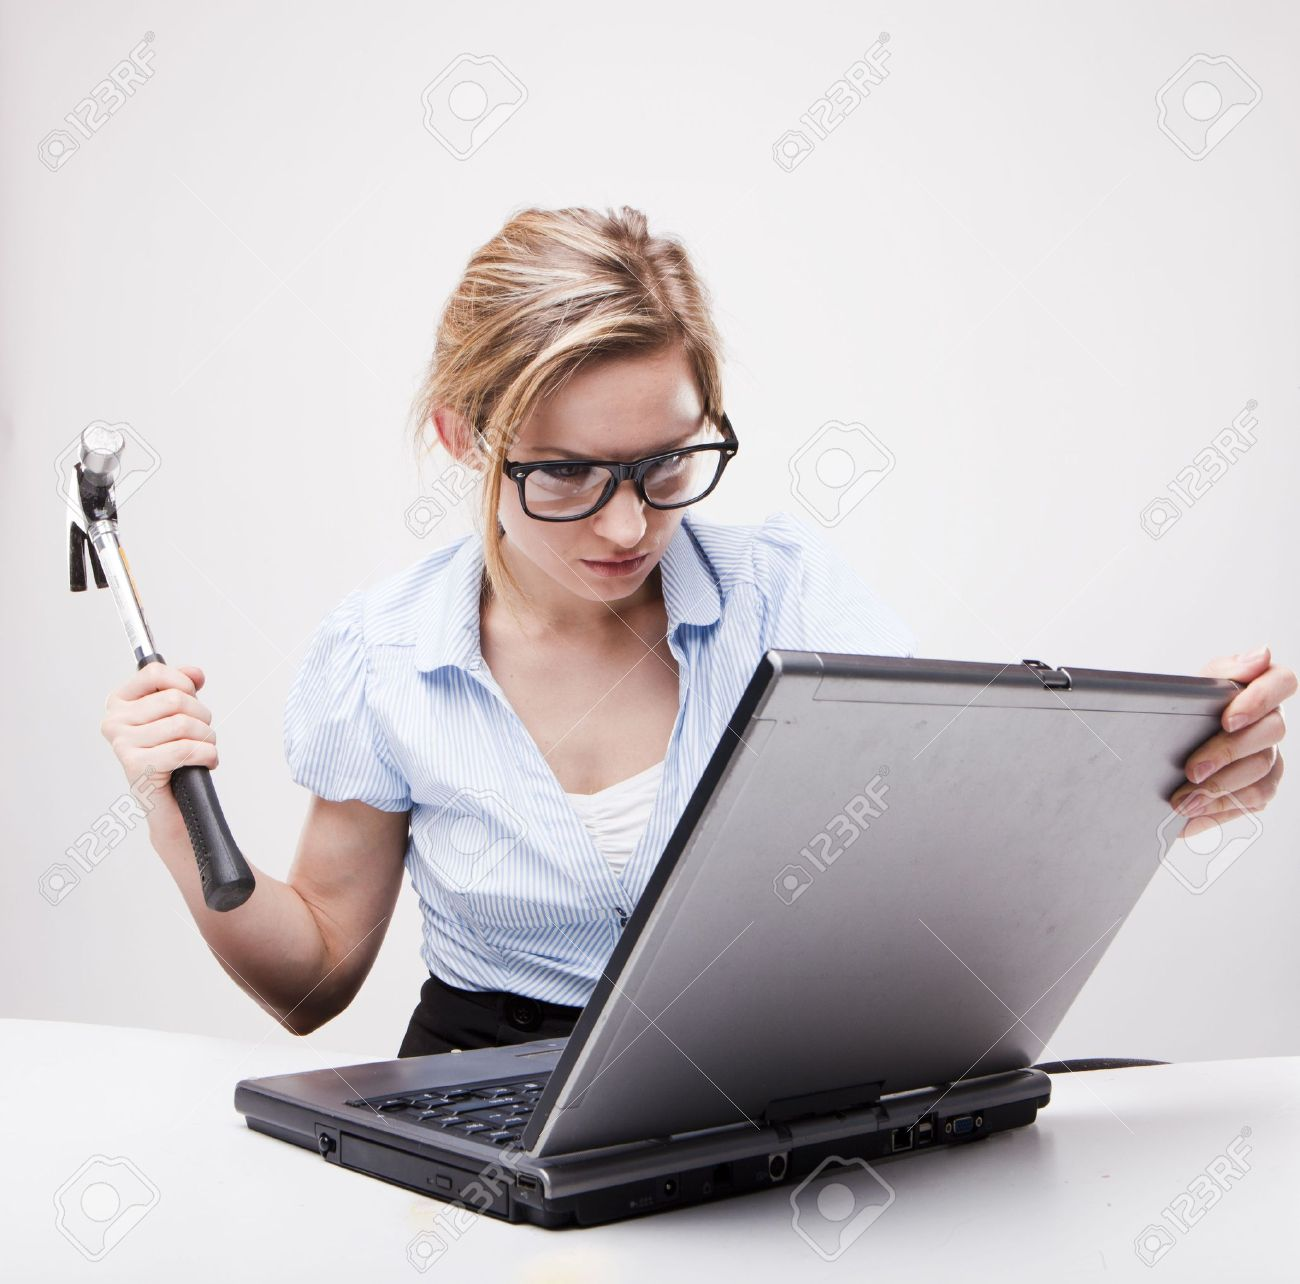 Attractive blond hair woman wearing business suit sitting in front of a computer with angry facial expression holding a hammer and wearing glasses Stock Photo - 7347635